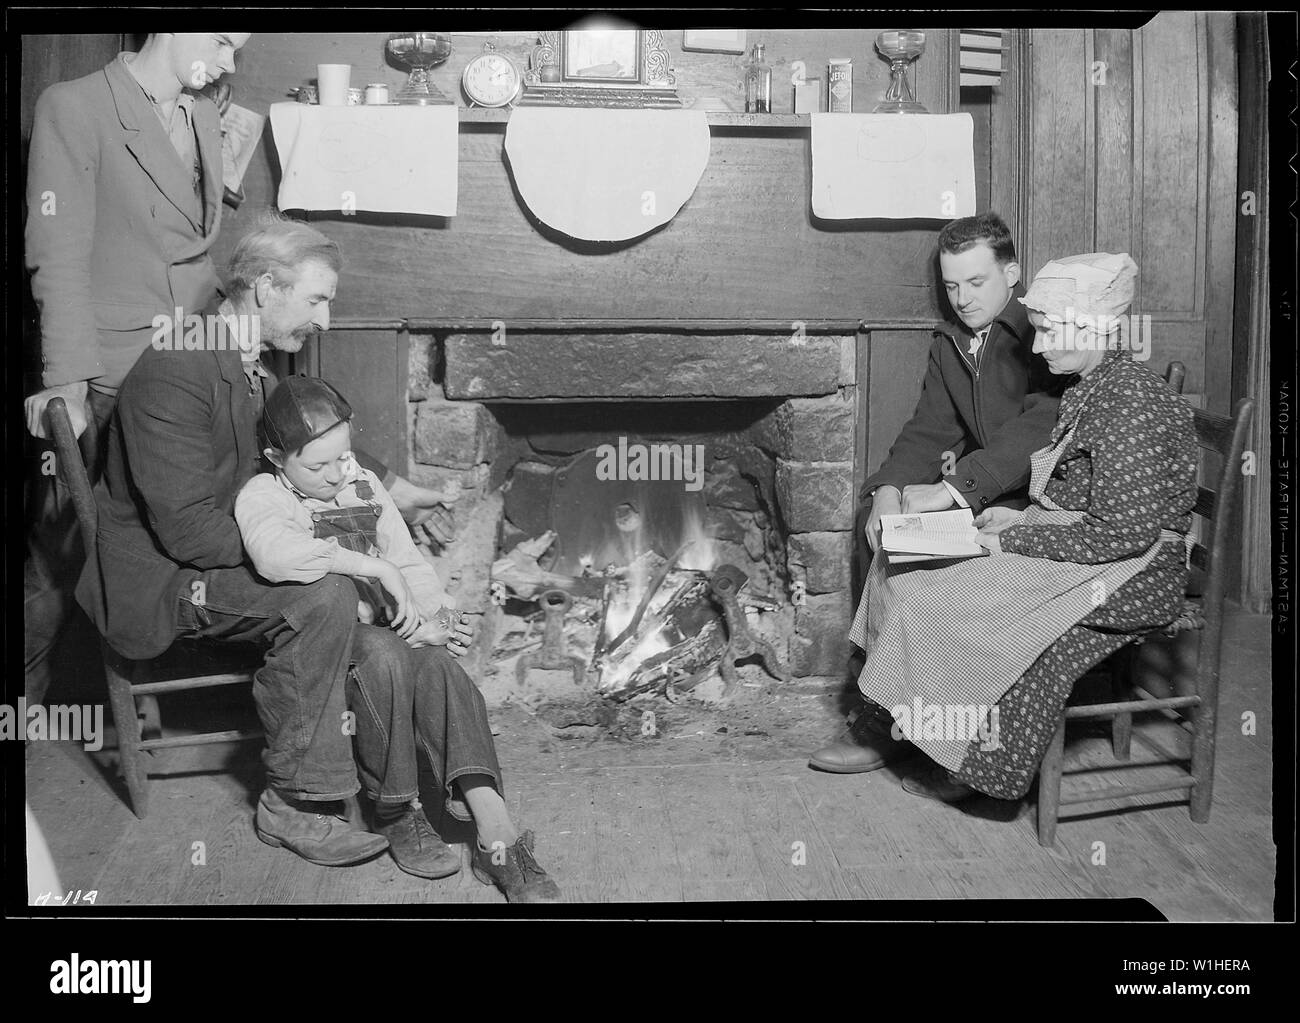 Oscar Cloud and family, living in the Norris townsite area. Cloud has been a quarryman and farmer. His oldest son is with the CCC. The other will likely have a job with the TVA. - Stock Image